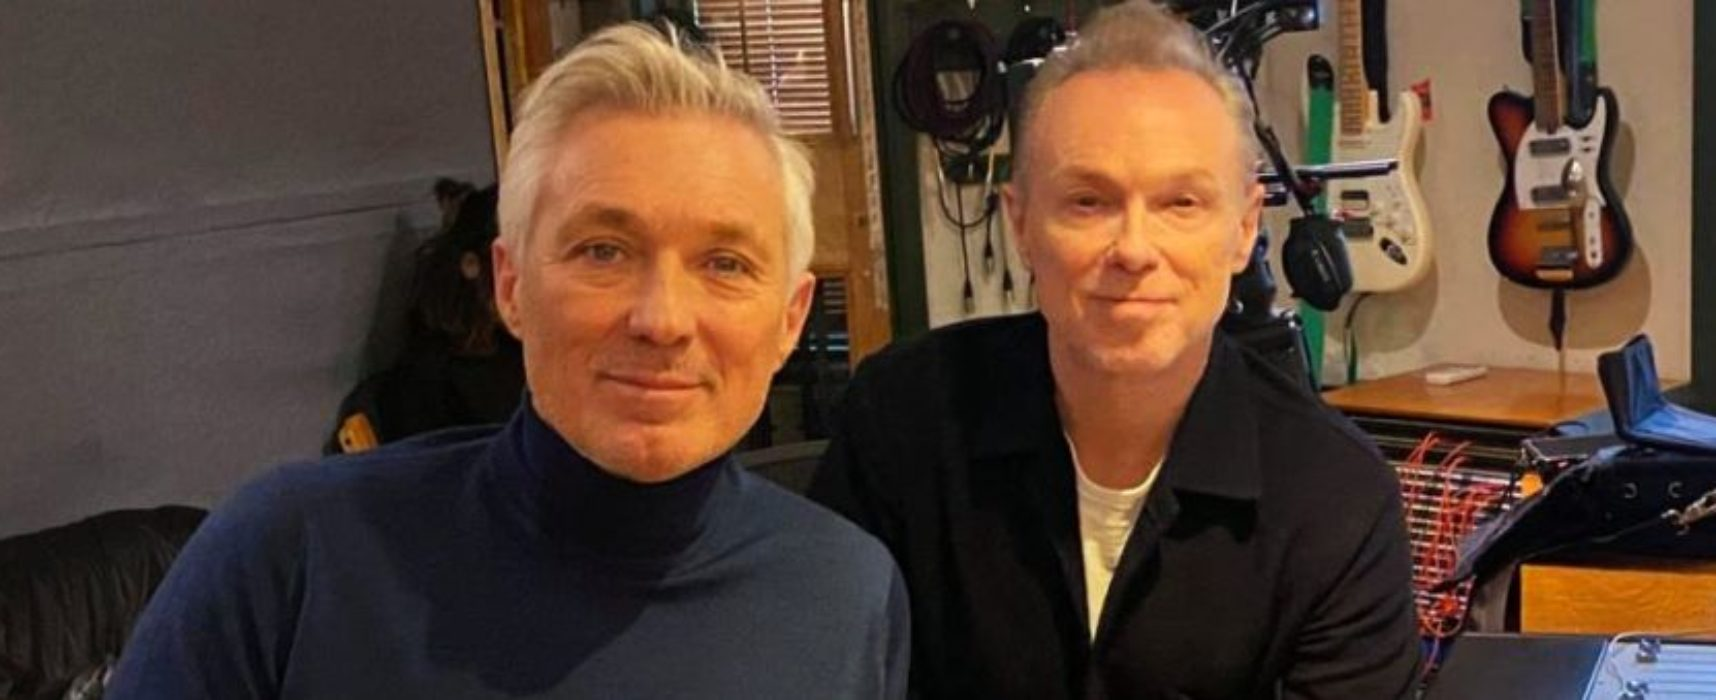 Spandau Ballet brothers for spoof BBC documentary